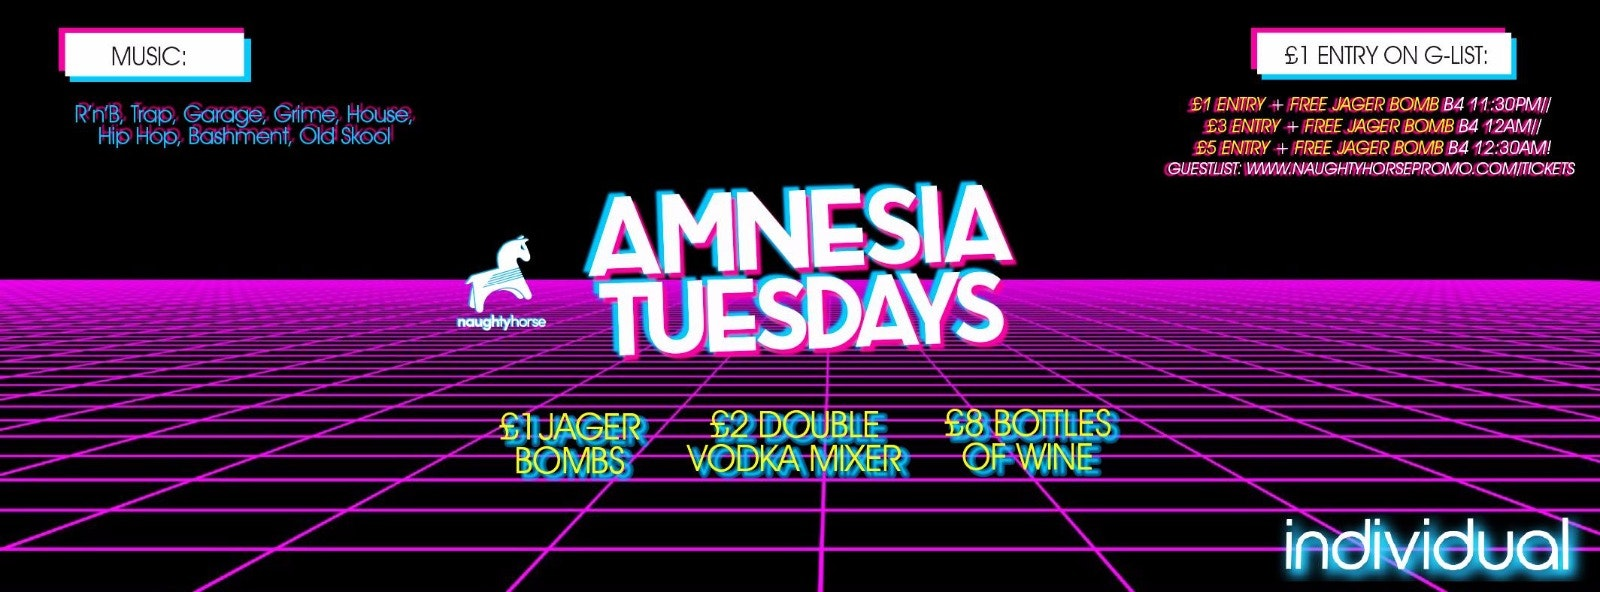 AMNESIA SPOOKDAYS: HALLOWEEN SPECIAL at Indi (Arcadian) – £1 Entry + FREE JAGERBOMB guestlist!